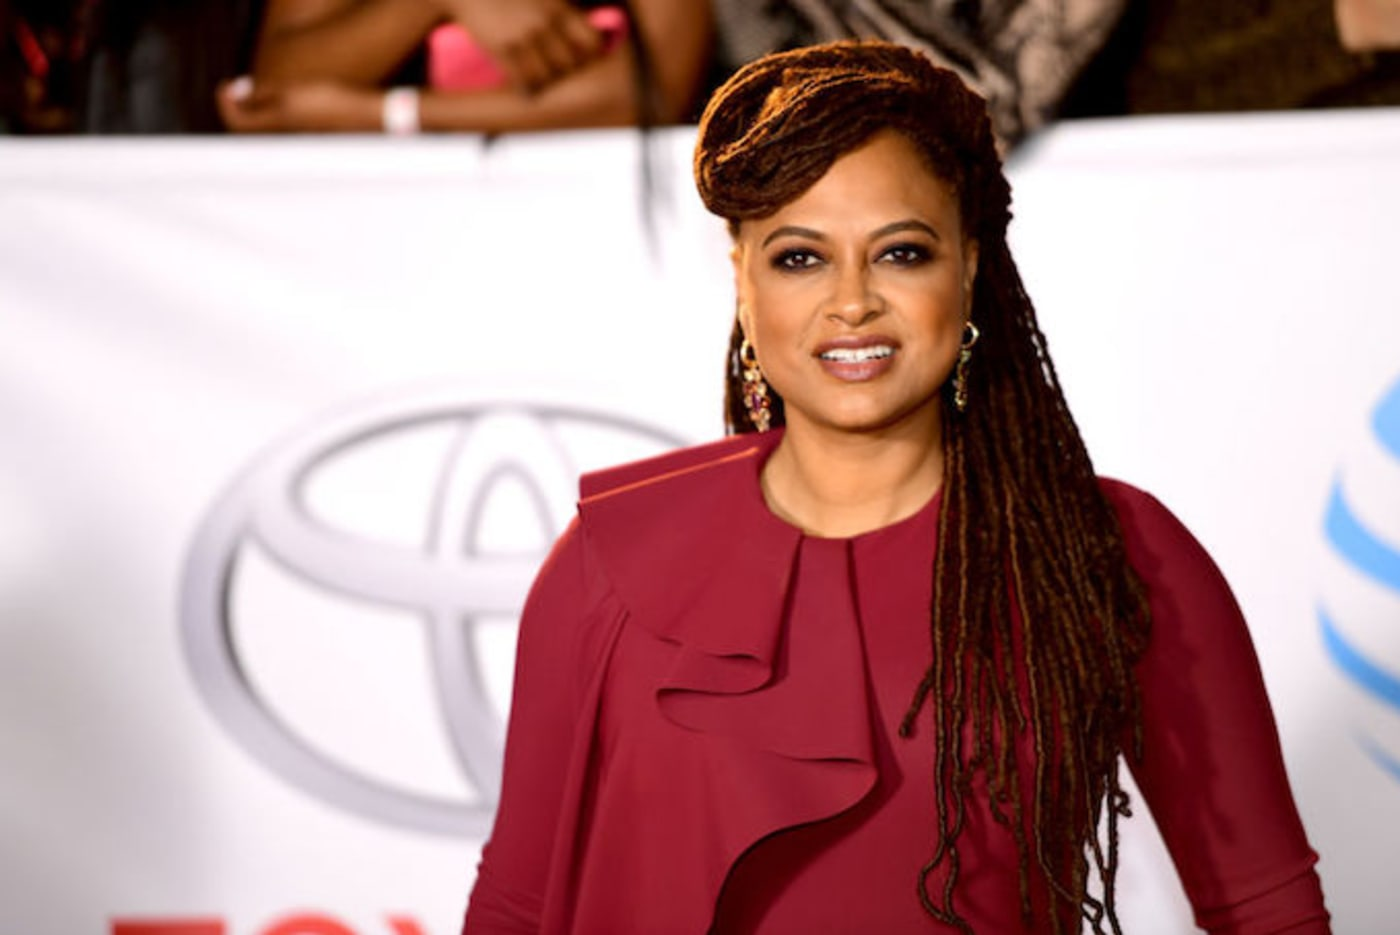 This is a photo of Ava Duvernay.